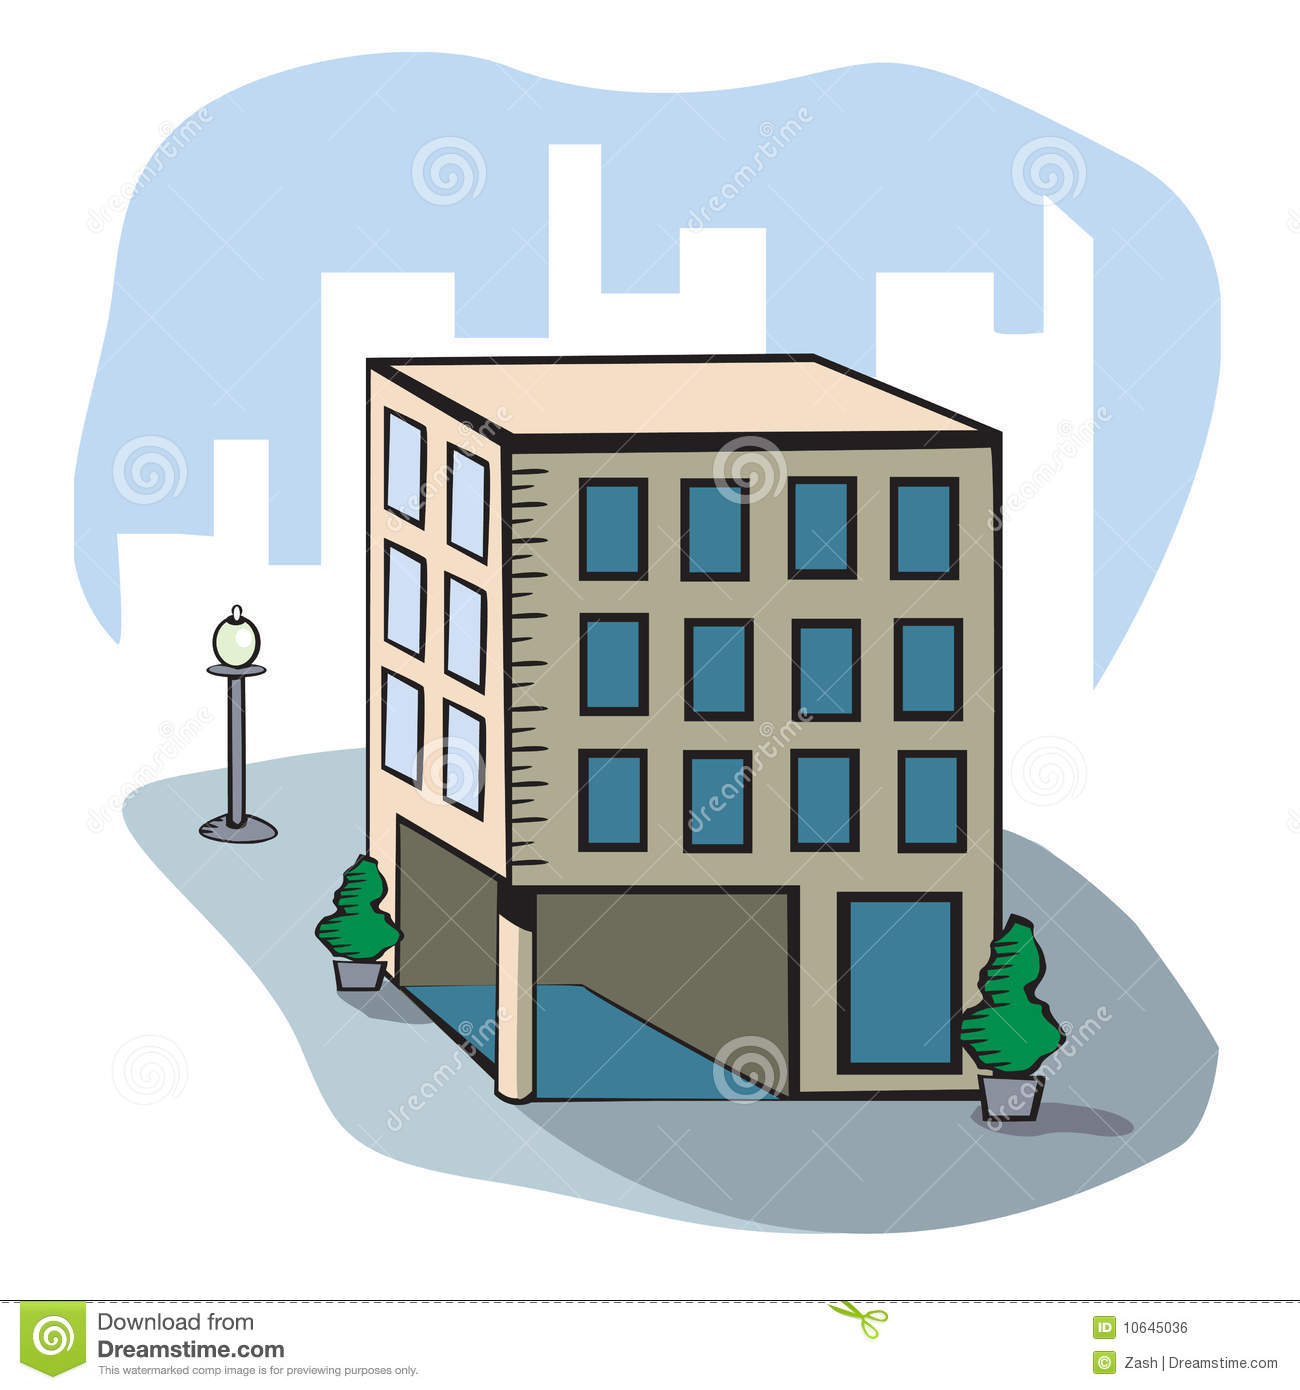 city buildings clipart - photo #19